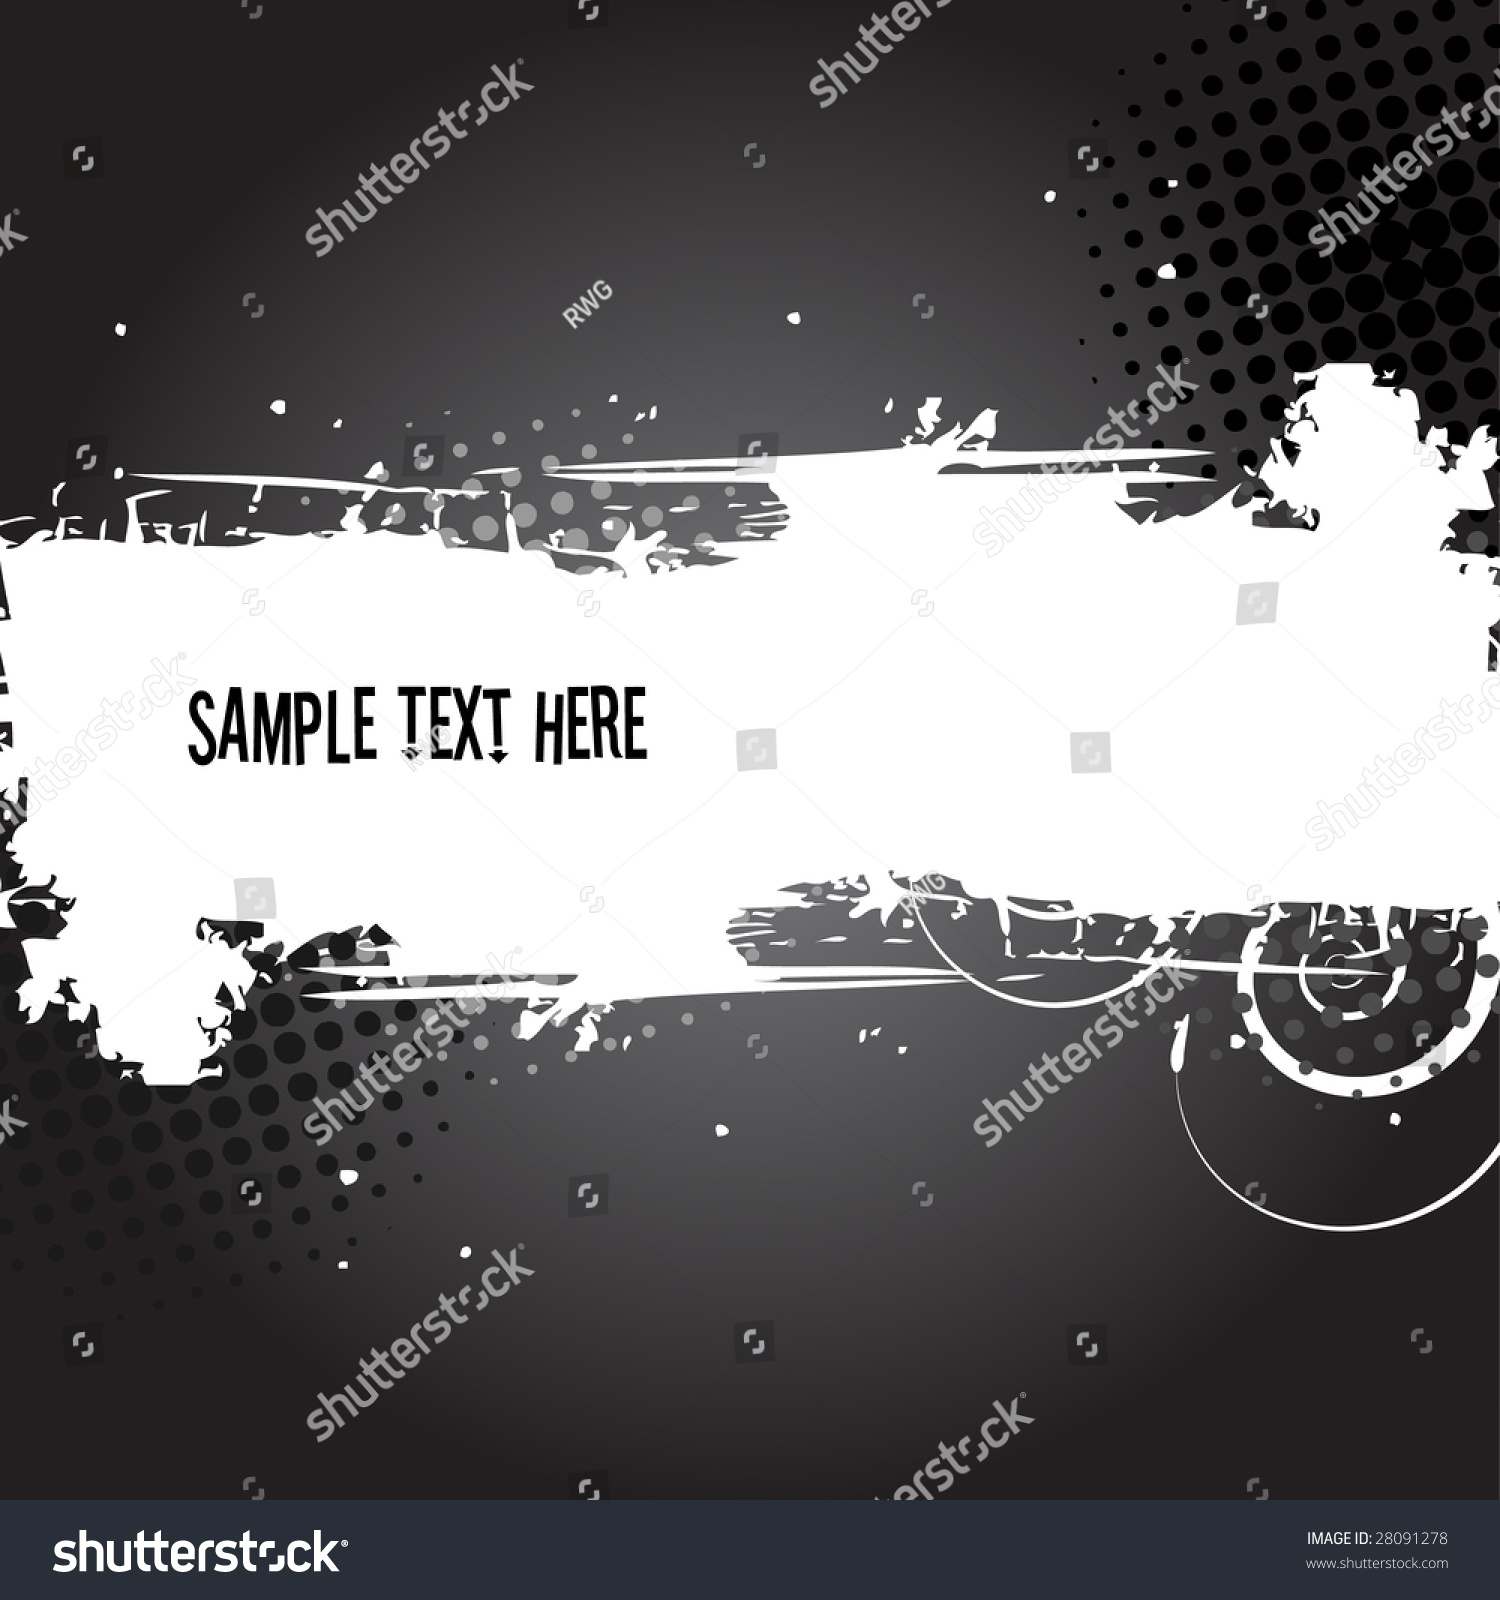 Grunge banner text space made white stock vector 28091278 for When was space made